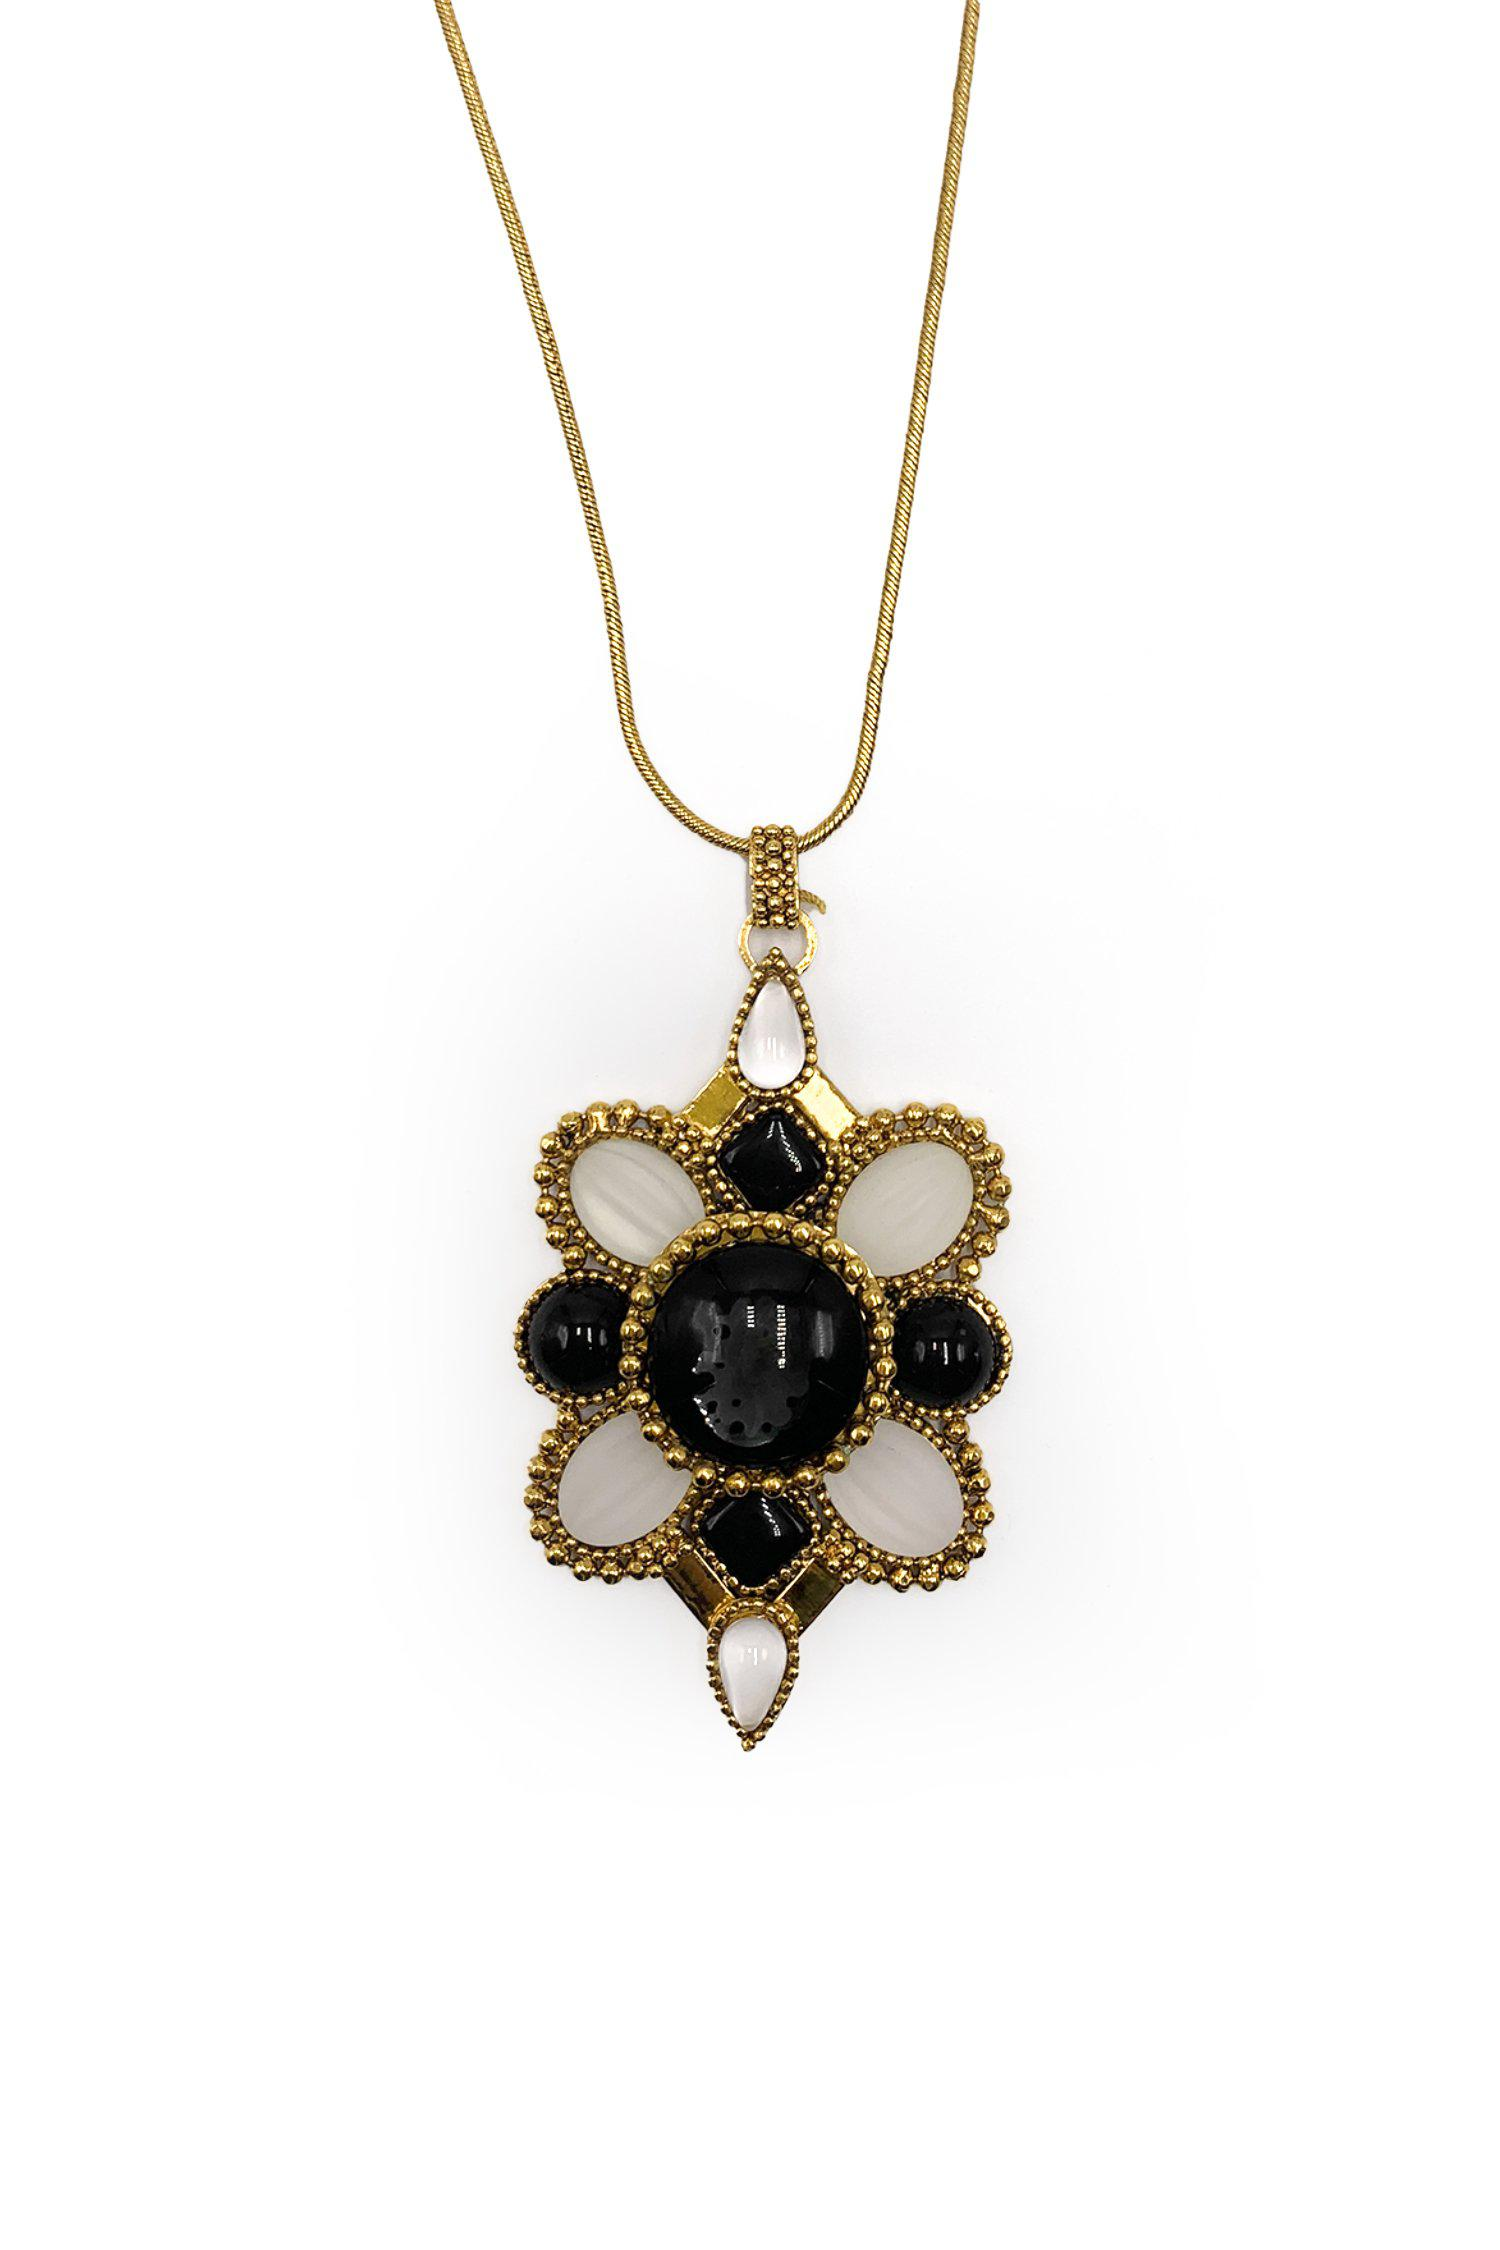 Anna Sui x Erickson Beamon Black and White Long Crest Necklace